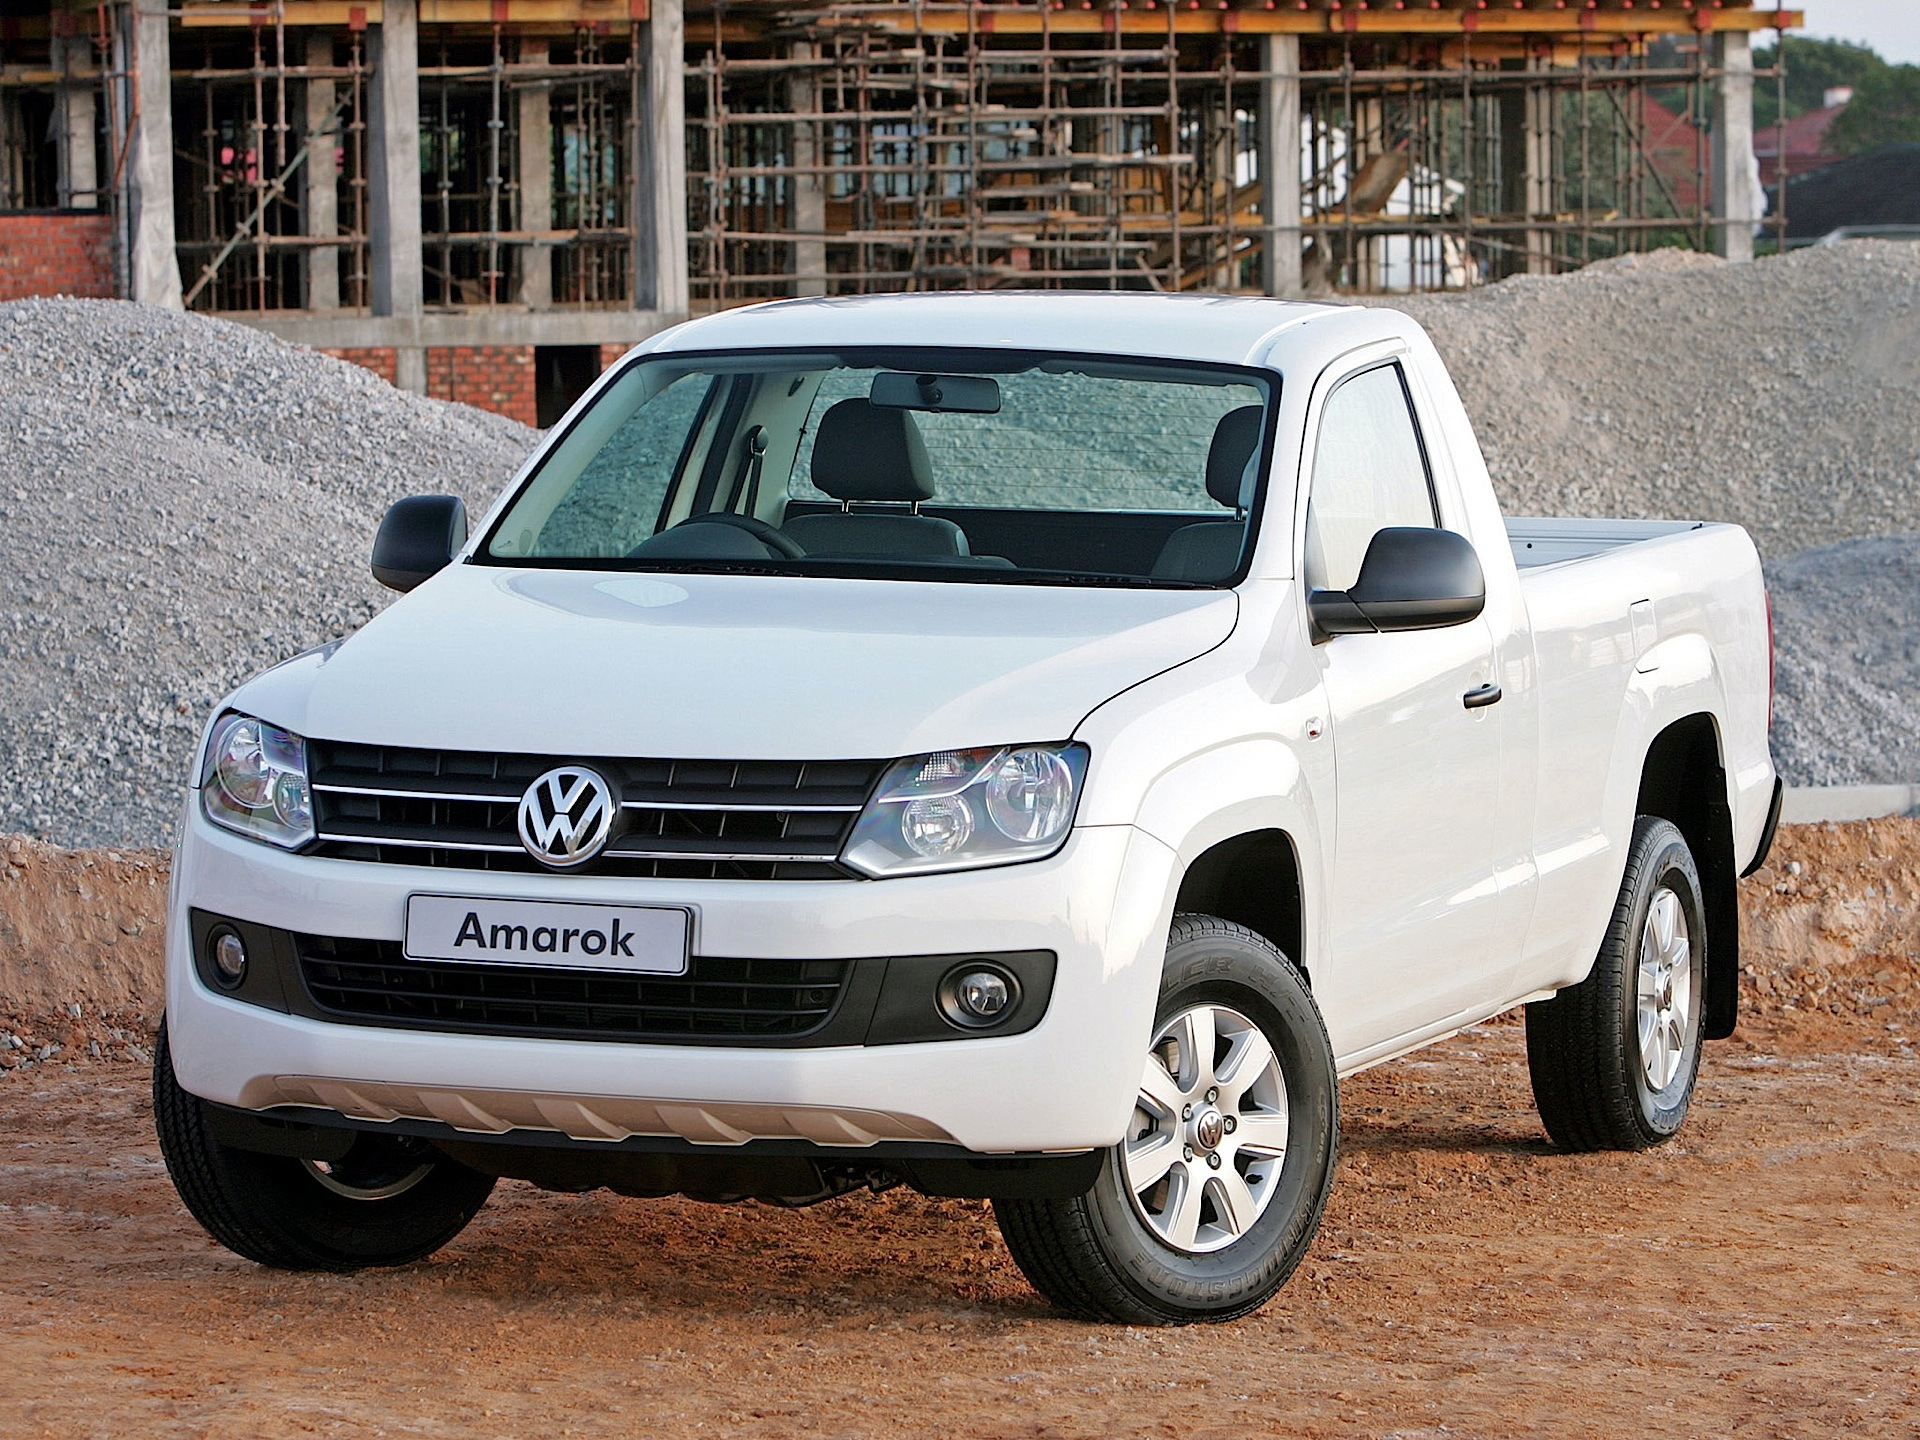 volkswagen amarok single cab specs 2011 2012 2013 2014 2015 2016 autoevolution. Black Bedroom Furniture Sets. Home Design Ideas